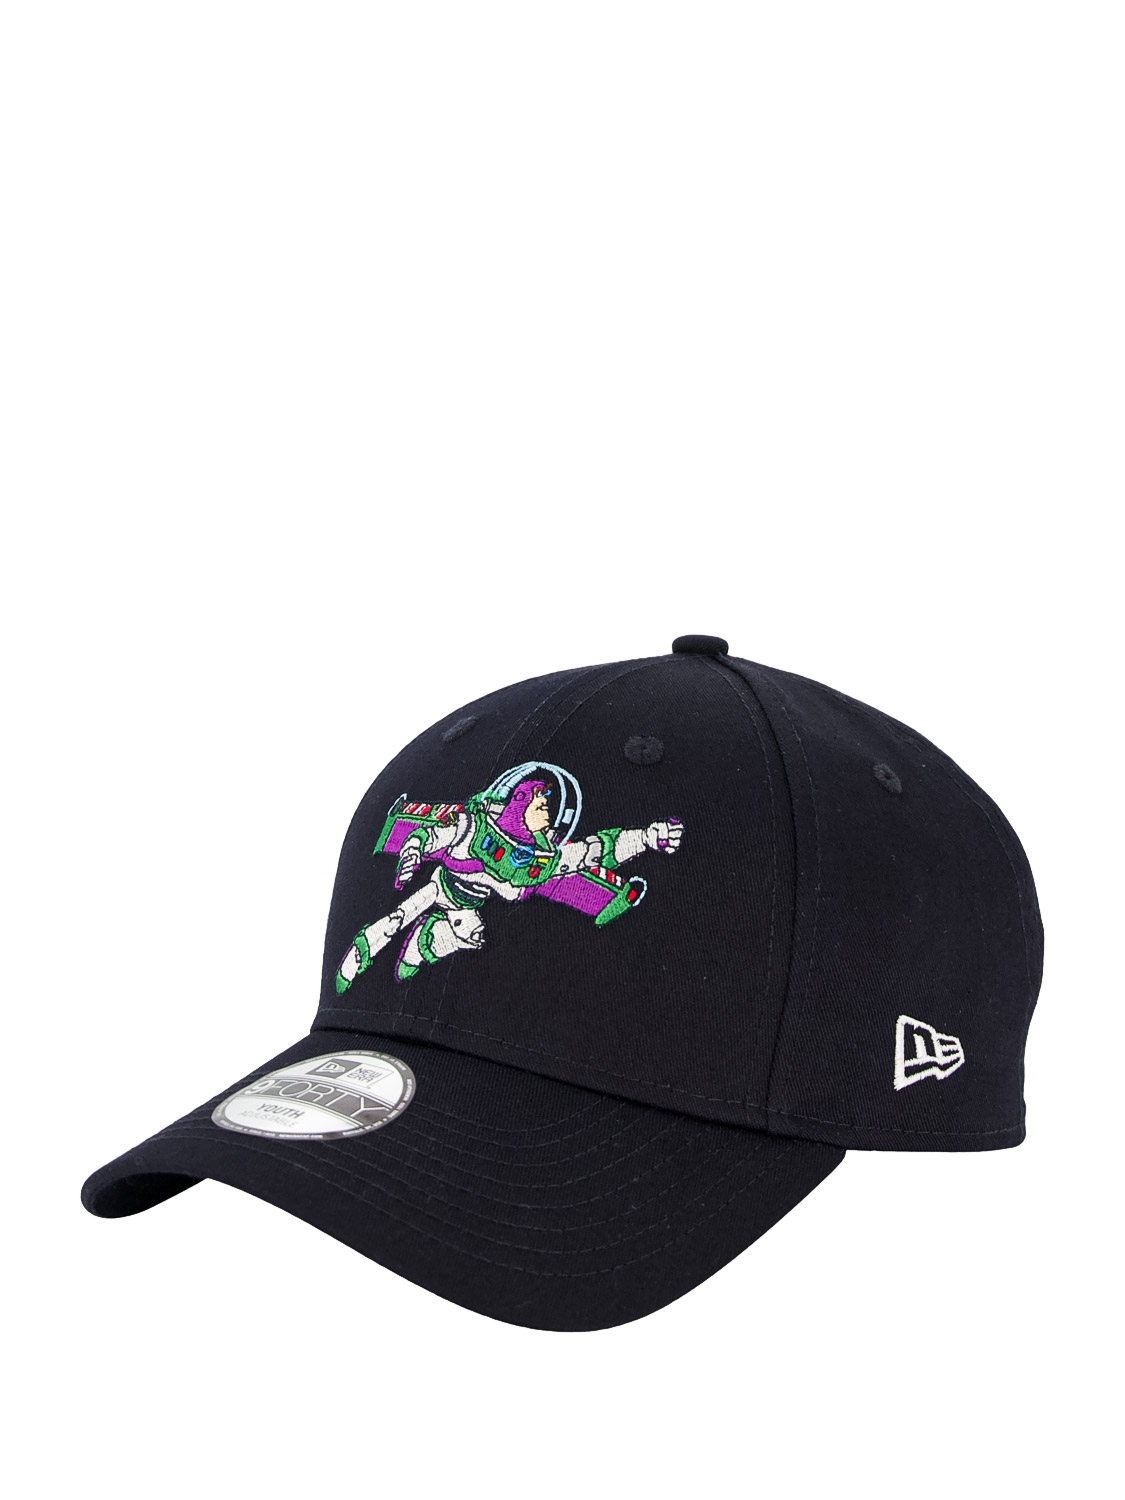 New Era Caps KIDS CAP 9FORTY FOR FOR BOYS AND FOR GIRLS